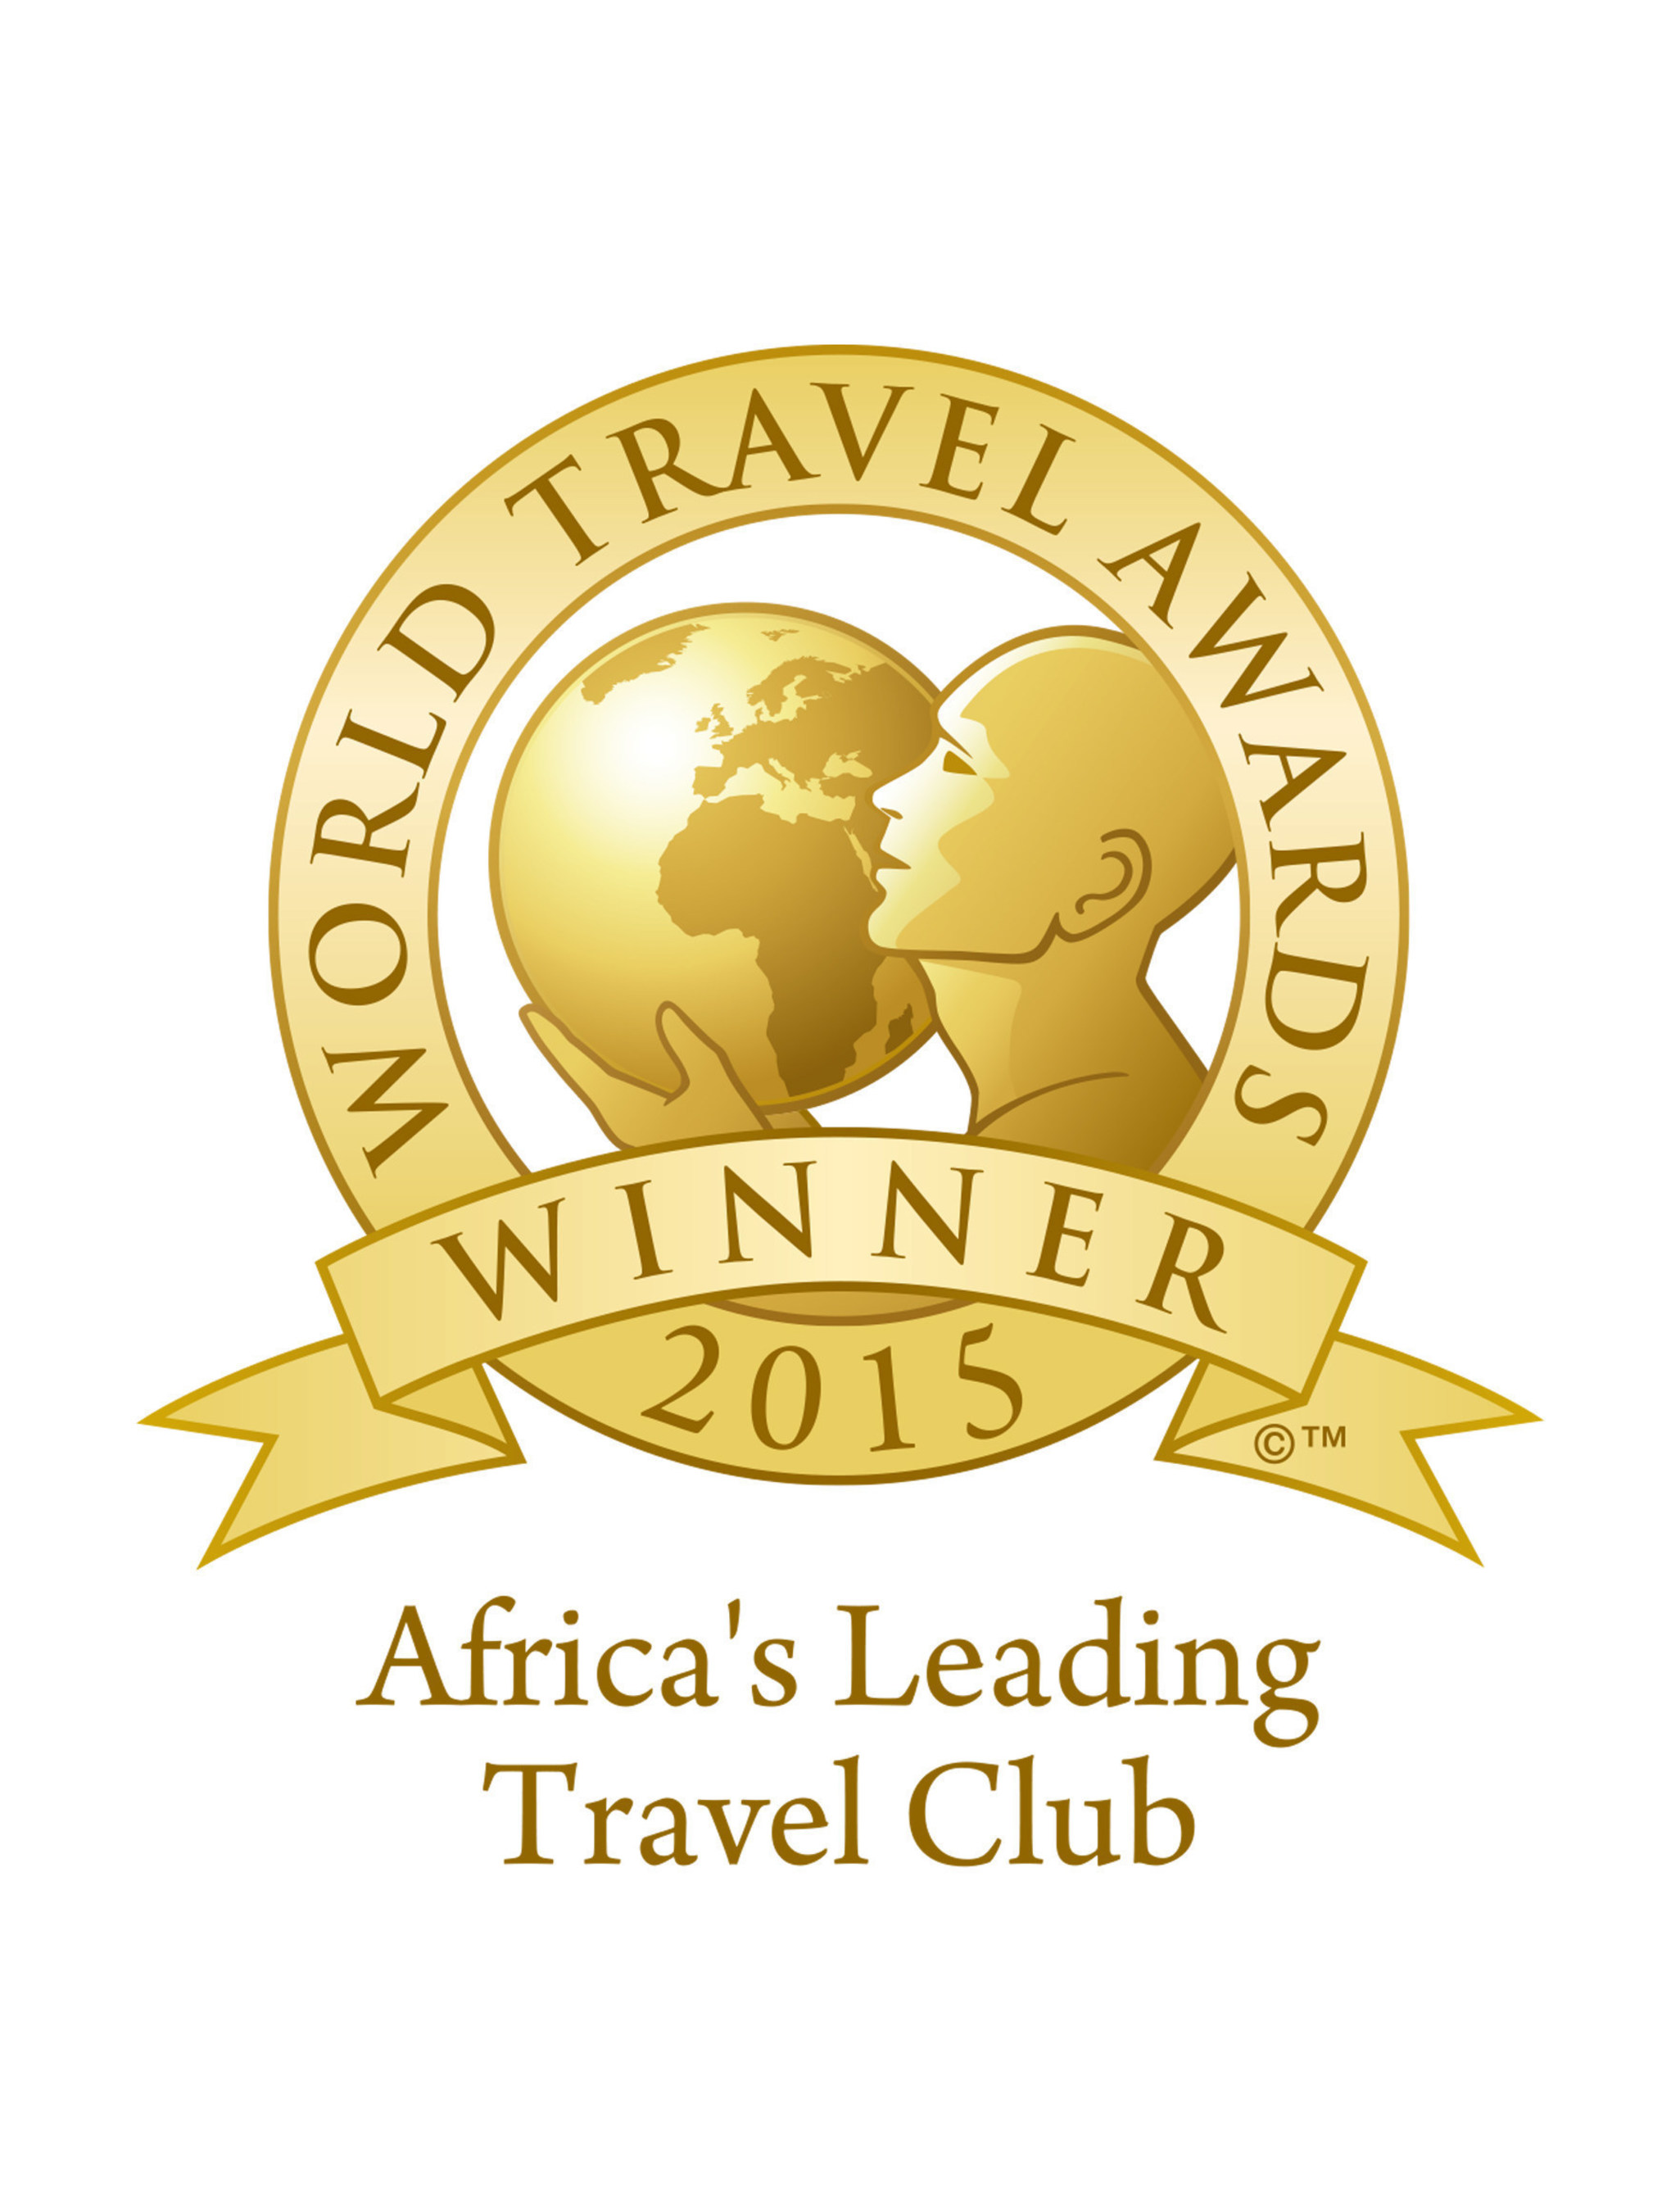 """For the second consecutive year, DreamTrips Vacation Club eclipsed competitors for the coveted title of """"Africa's Leading Travel Club"""" during the World Travel Awards Africa & Indian Ocean Gala Ceremony."""